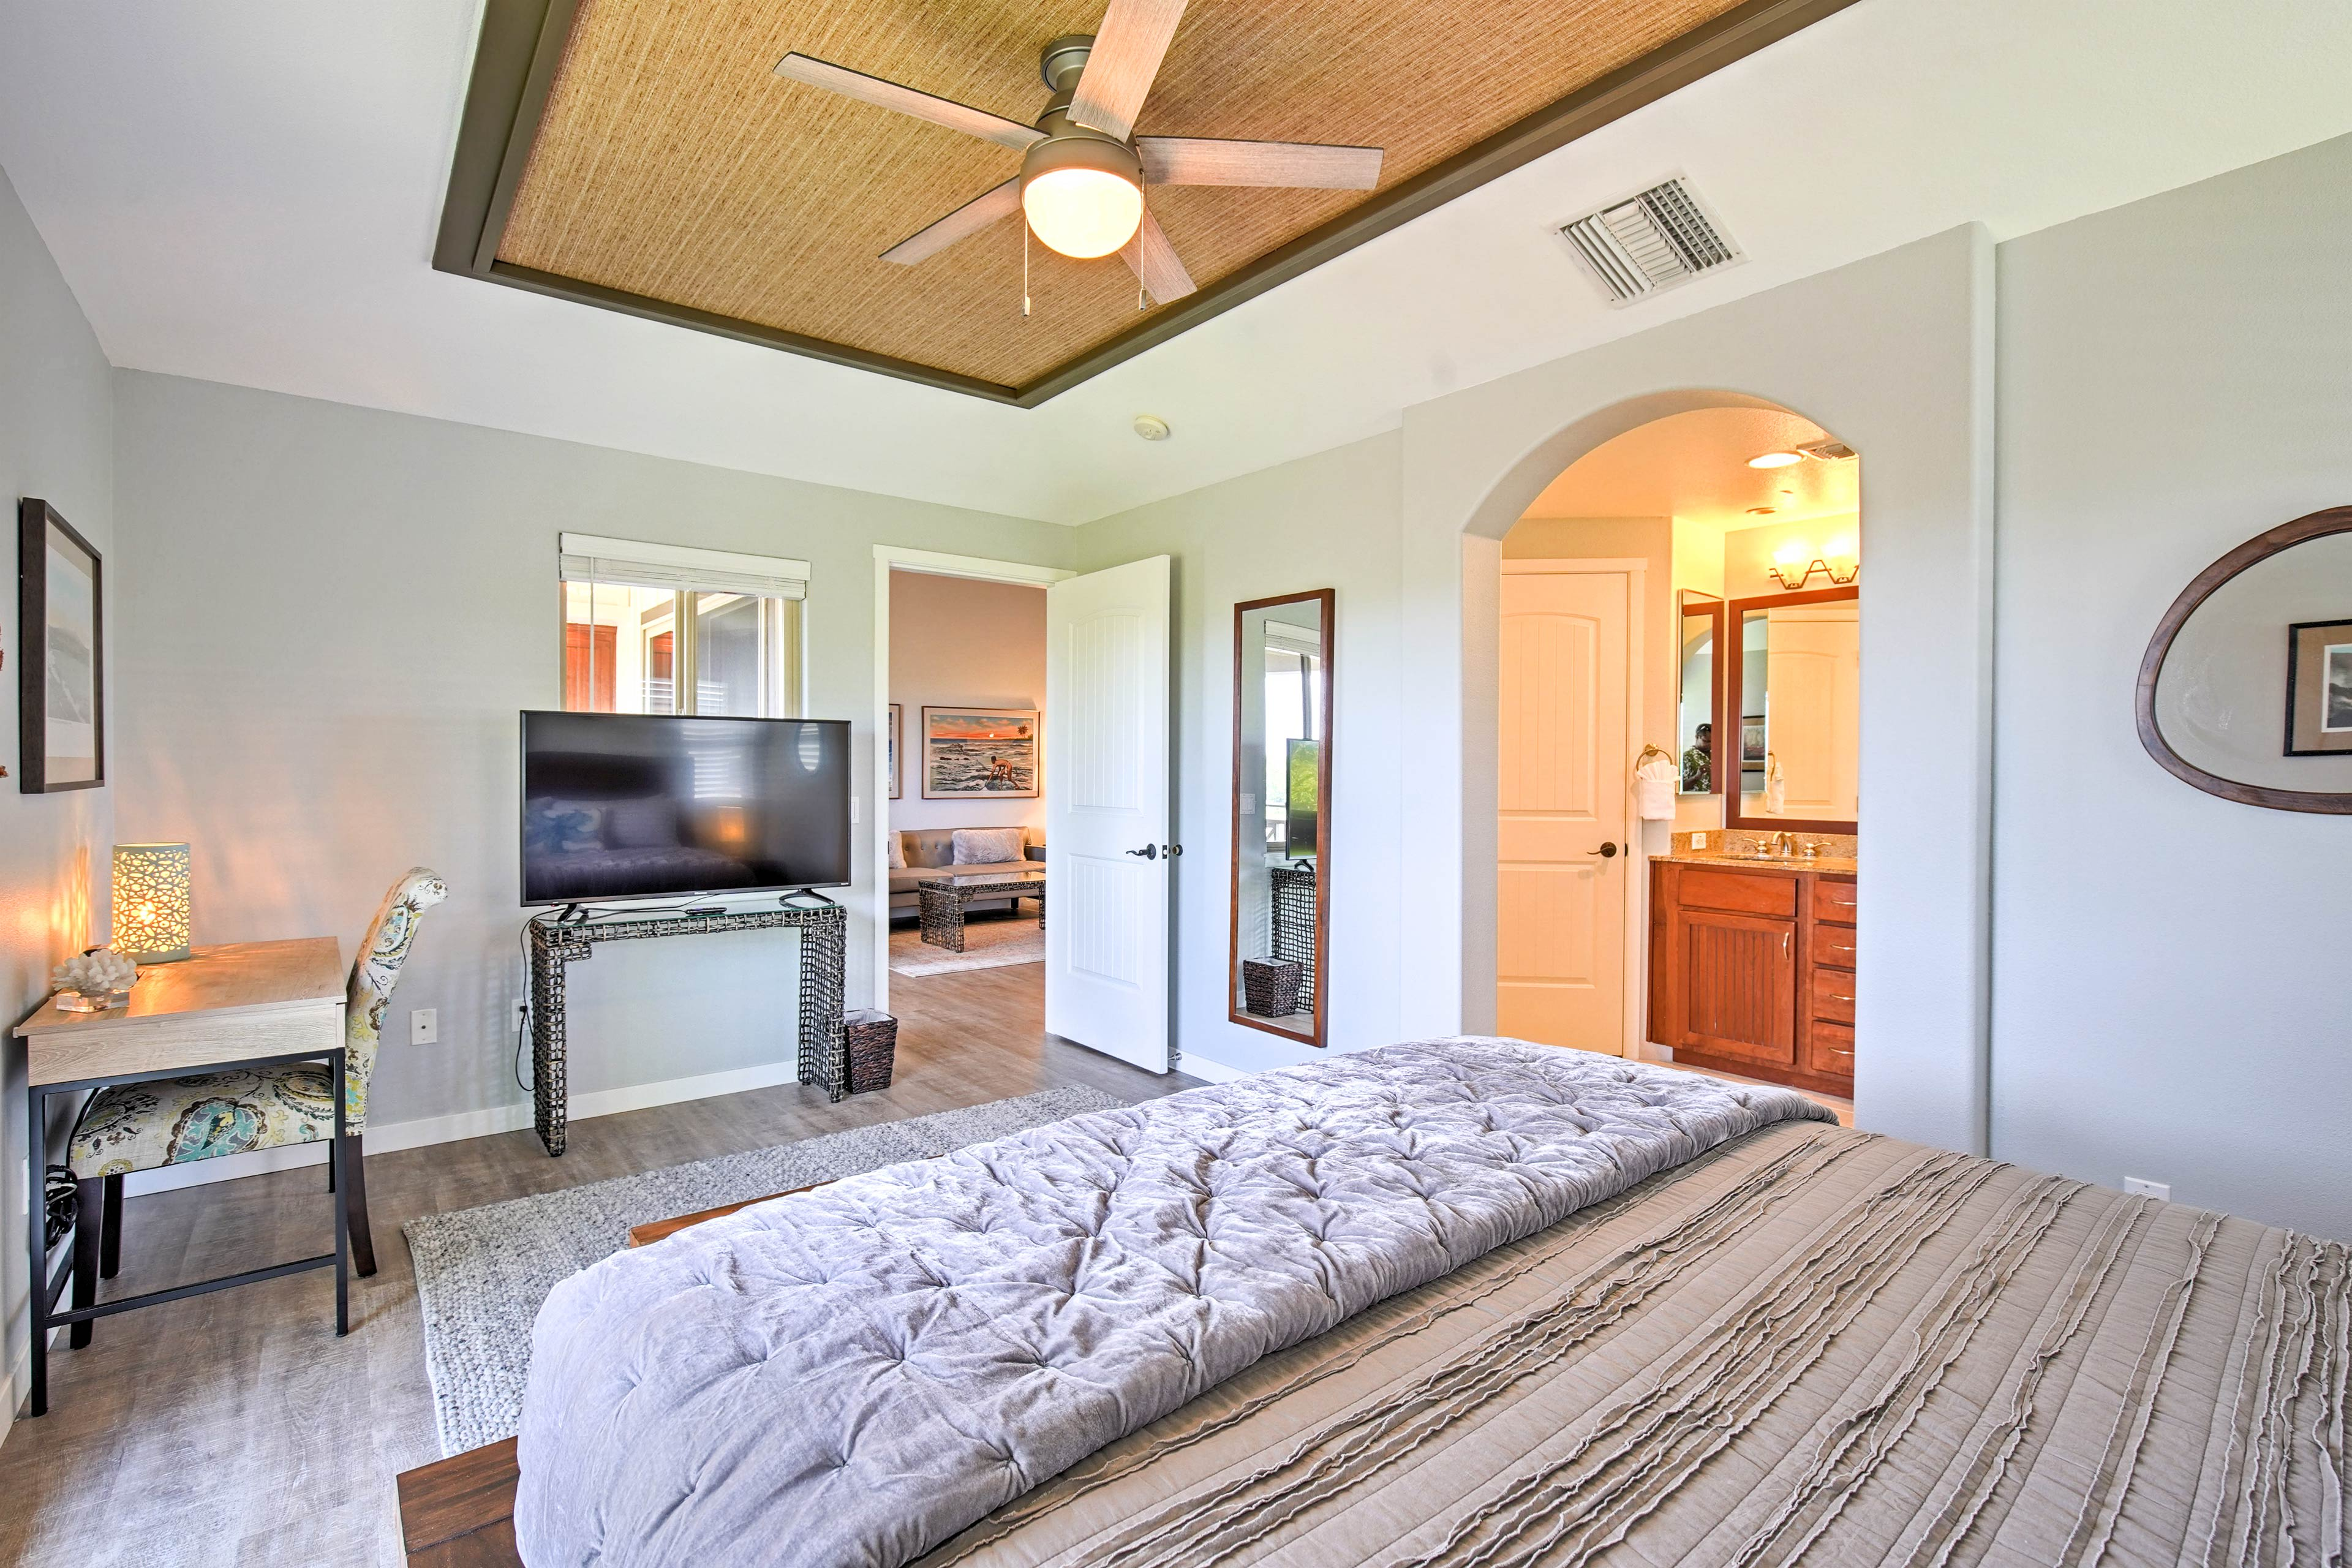 Watch the flat-screen TV as you drift off in the master bedroom.